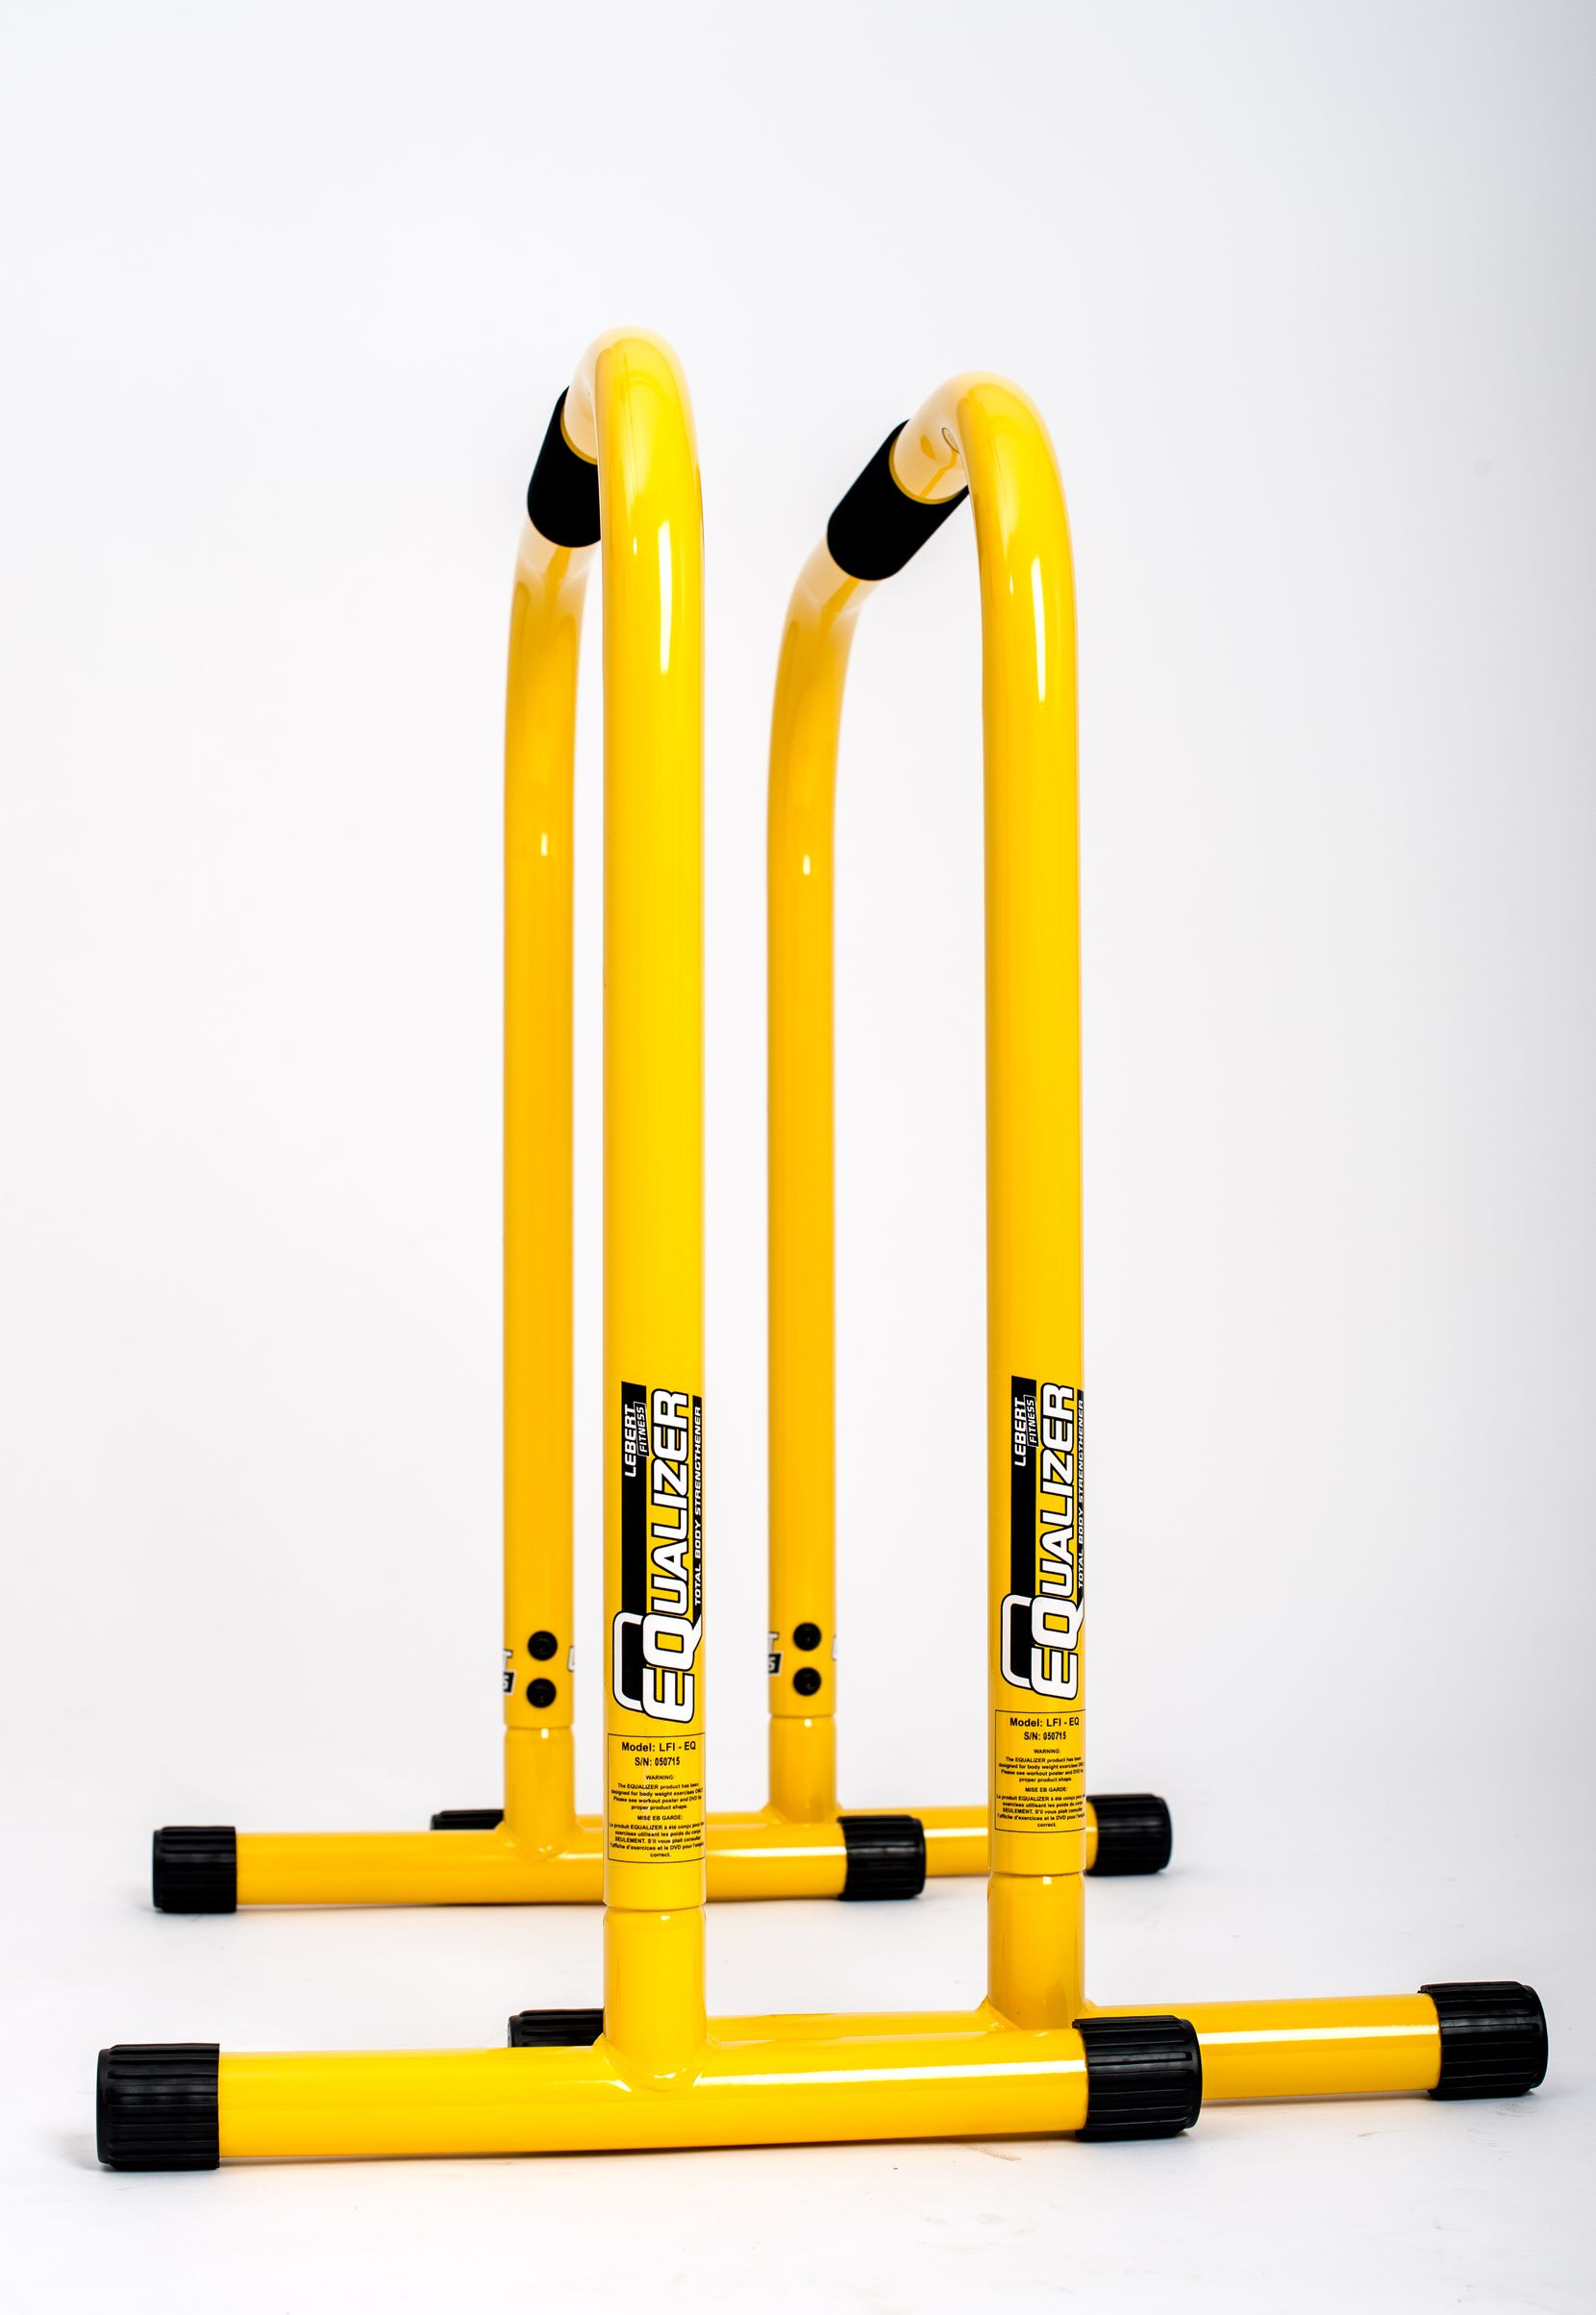 These fun-looking bars are called the Lebert EQualizer and are good to have at home for an indoor workout.